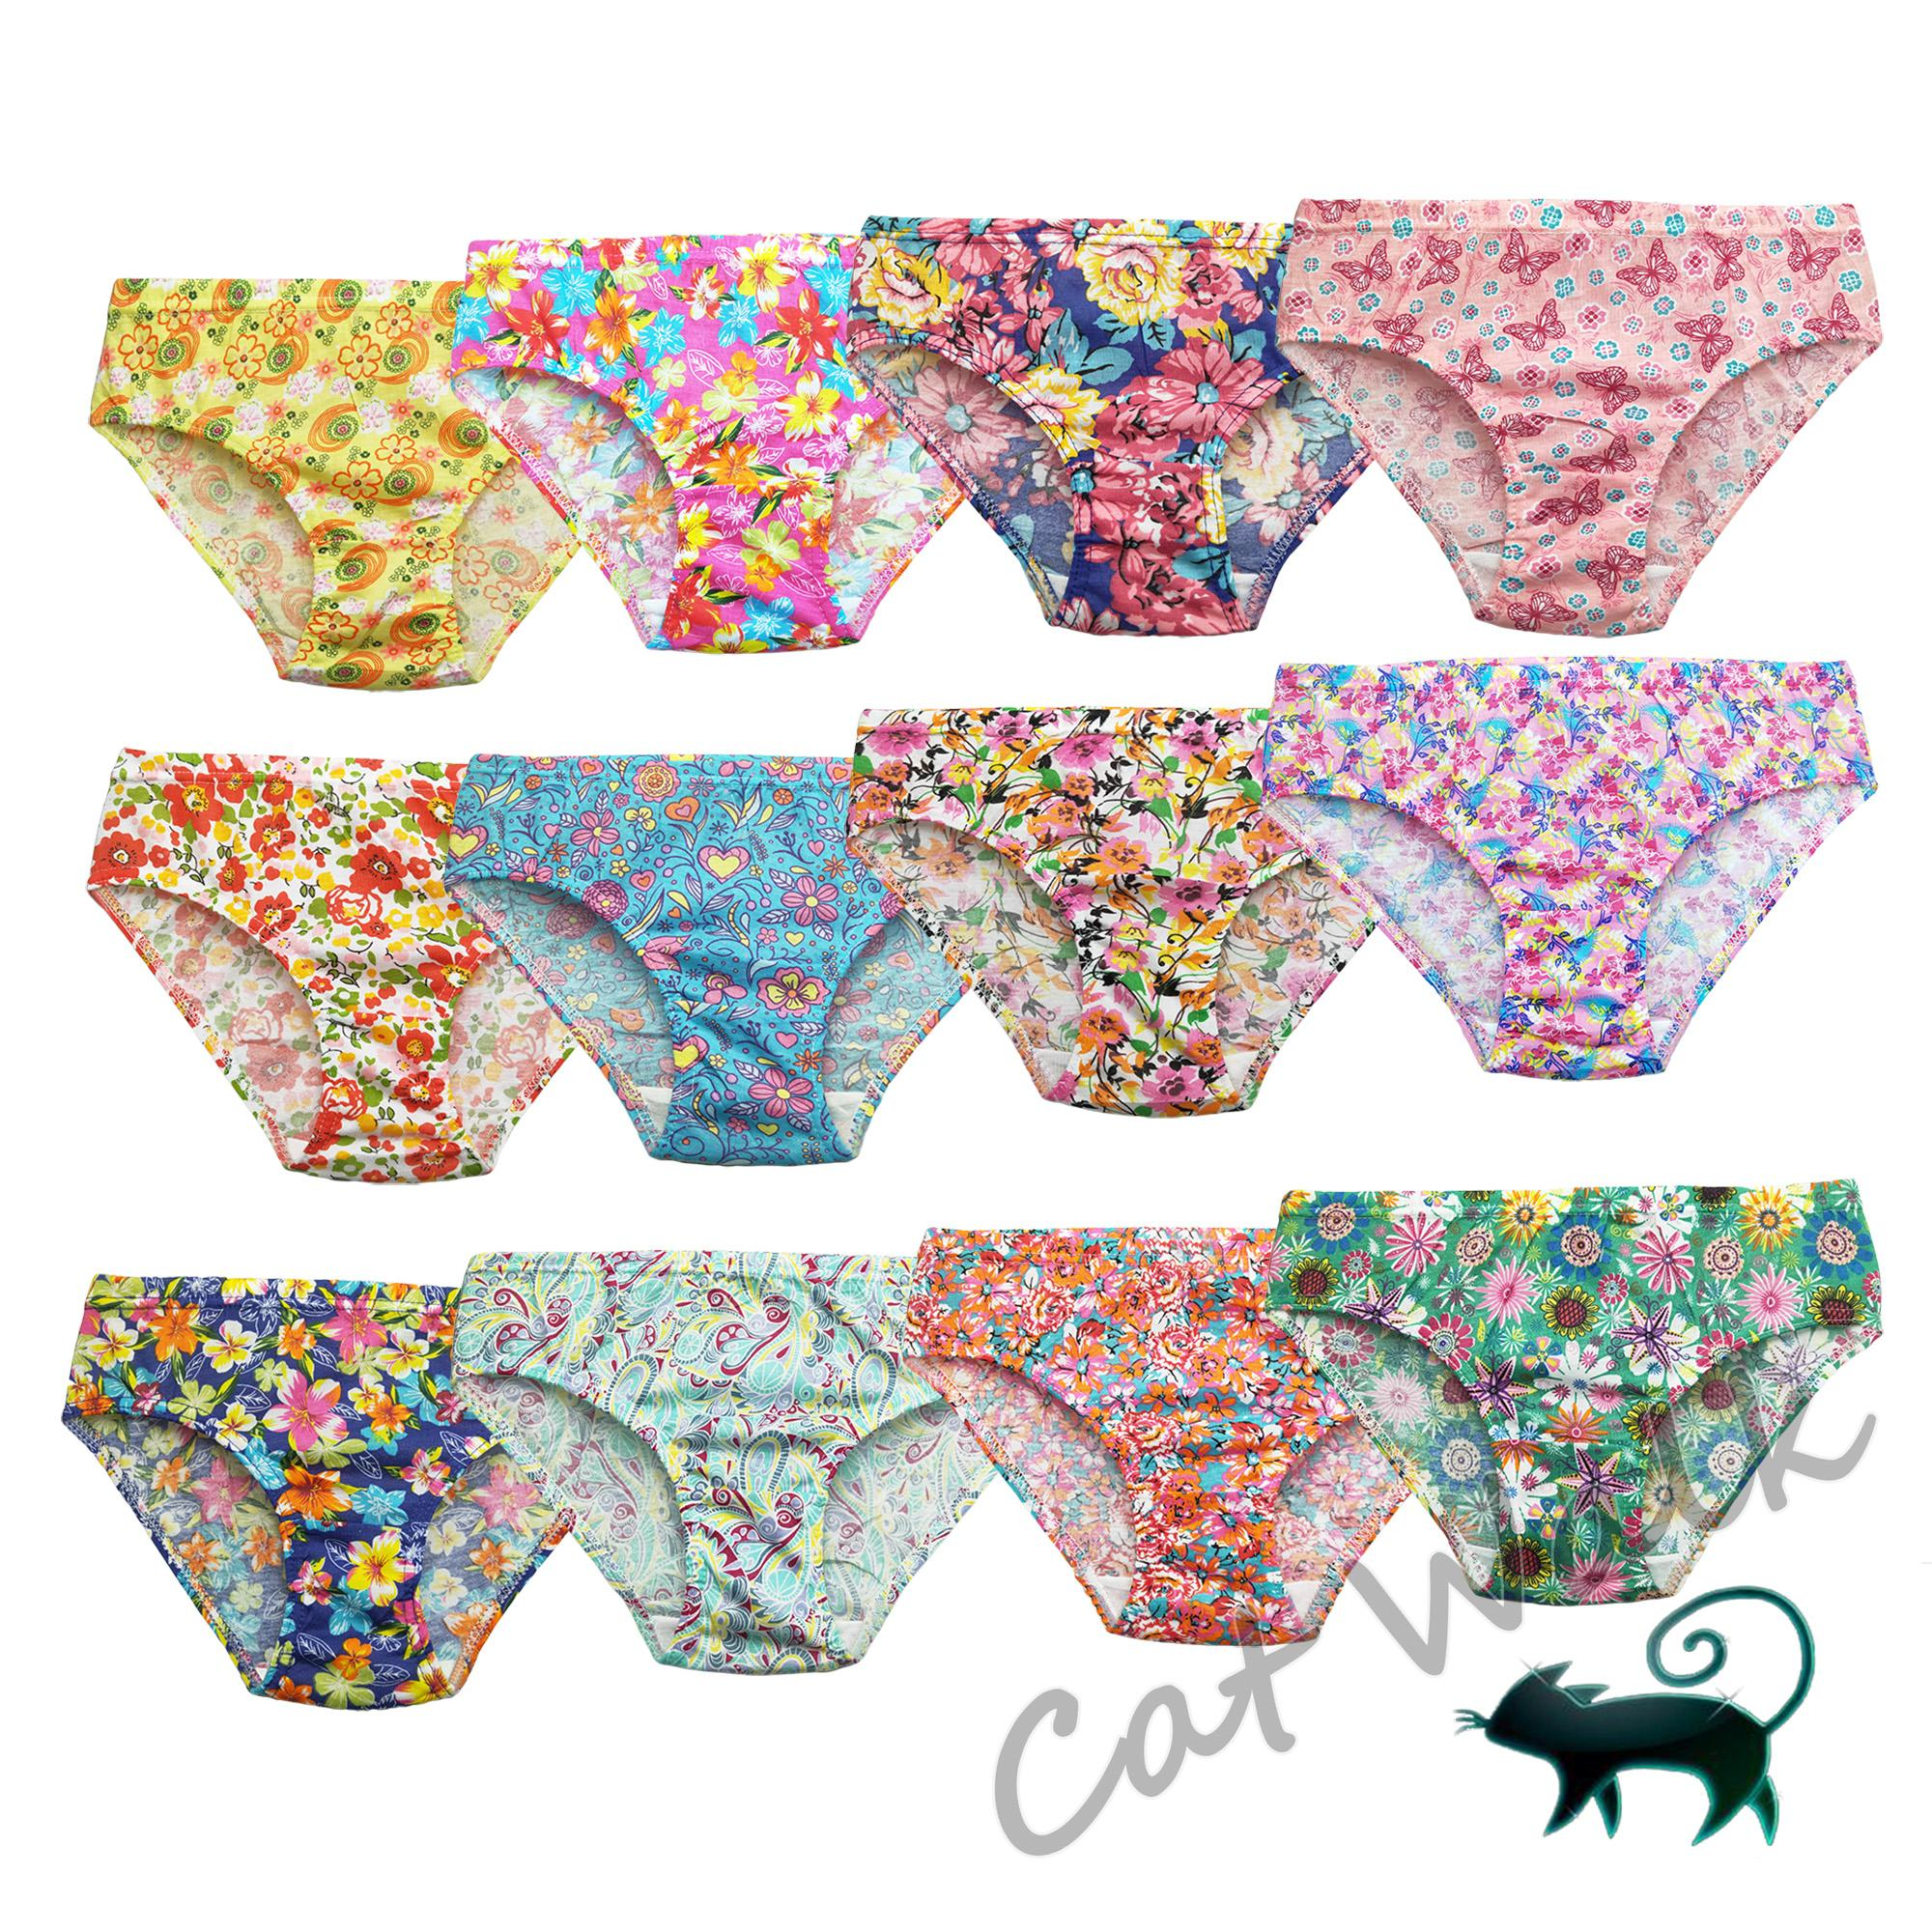 c4effd998d08d Panties for Women for sale - Womens Panties Online Deals & Prices in ...